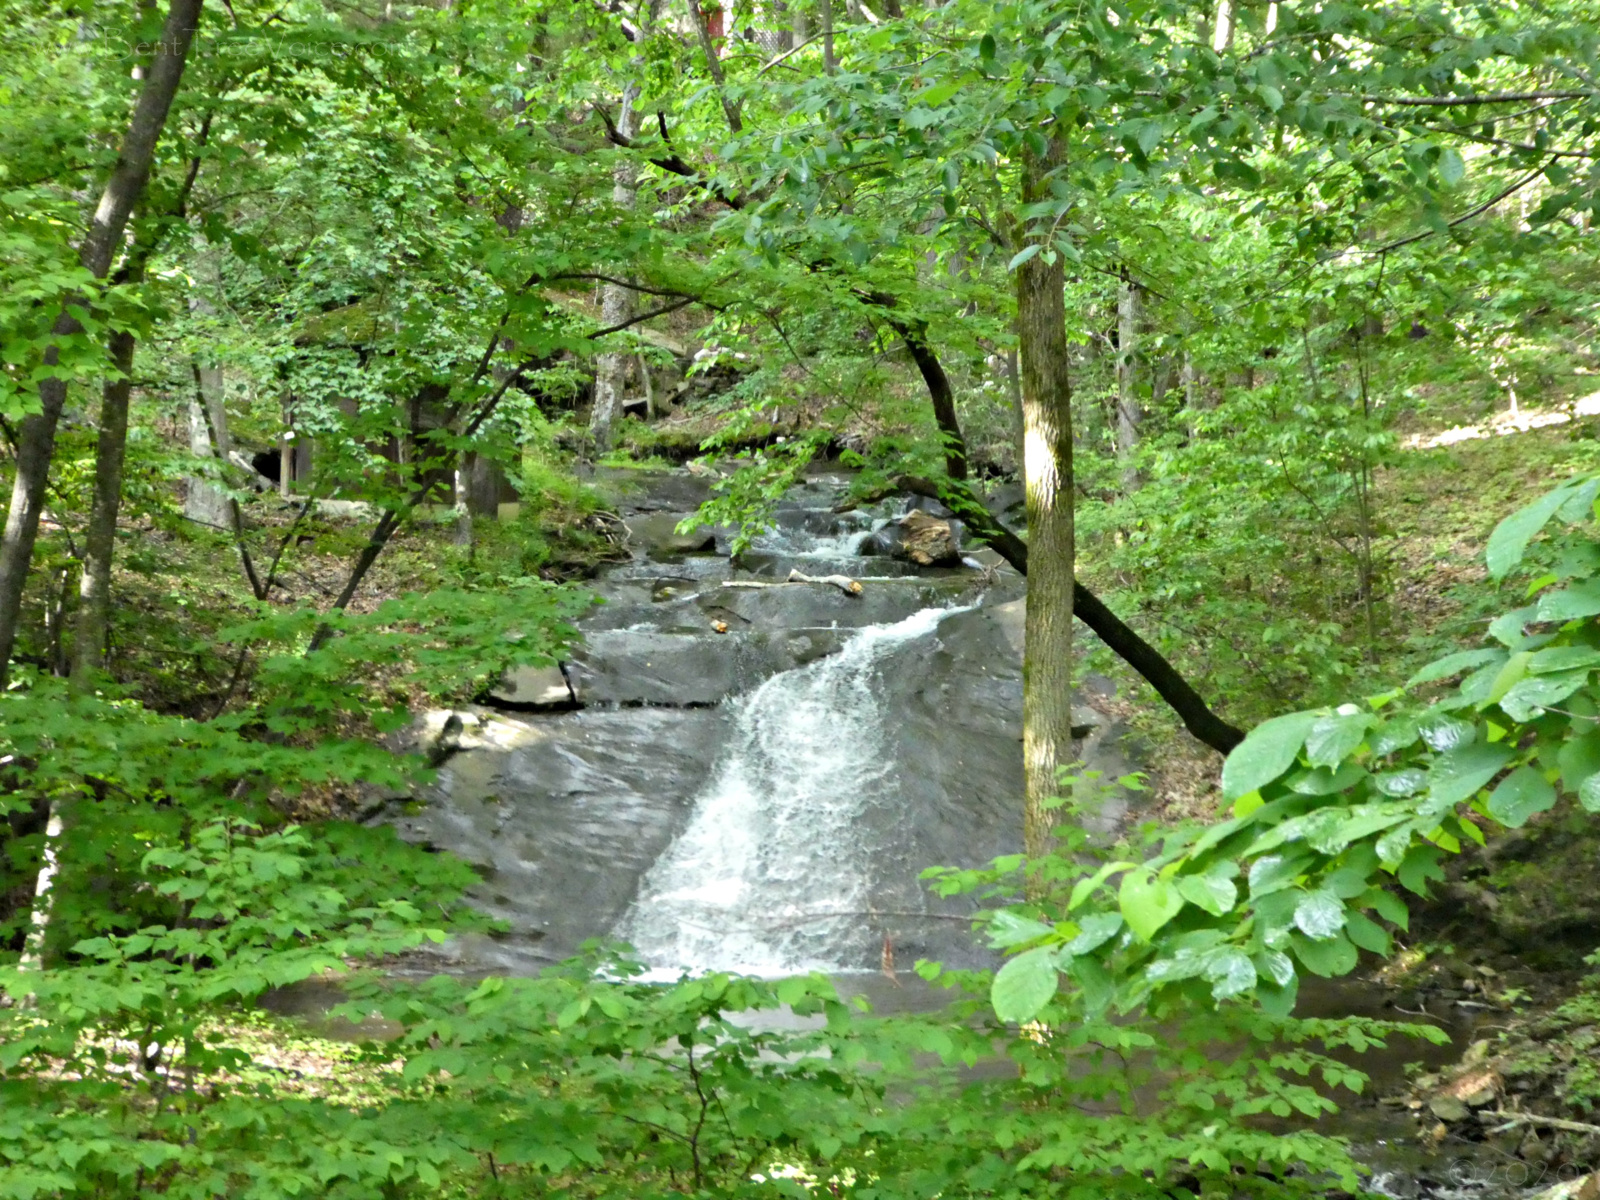 May 23, 2020 - the waterfall at 926 Tamarack Dr. as seen from the Bent Tree Golf Course